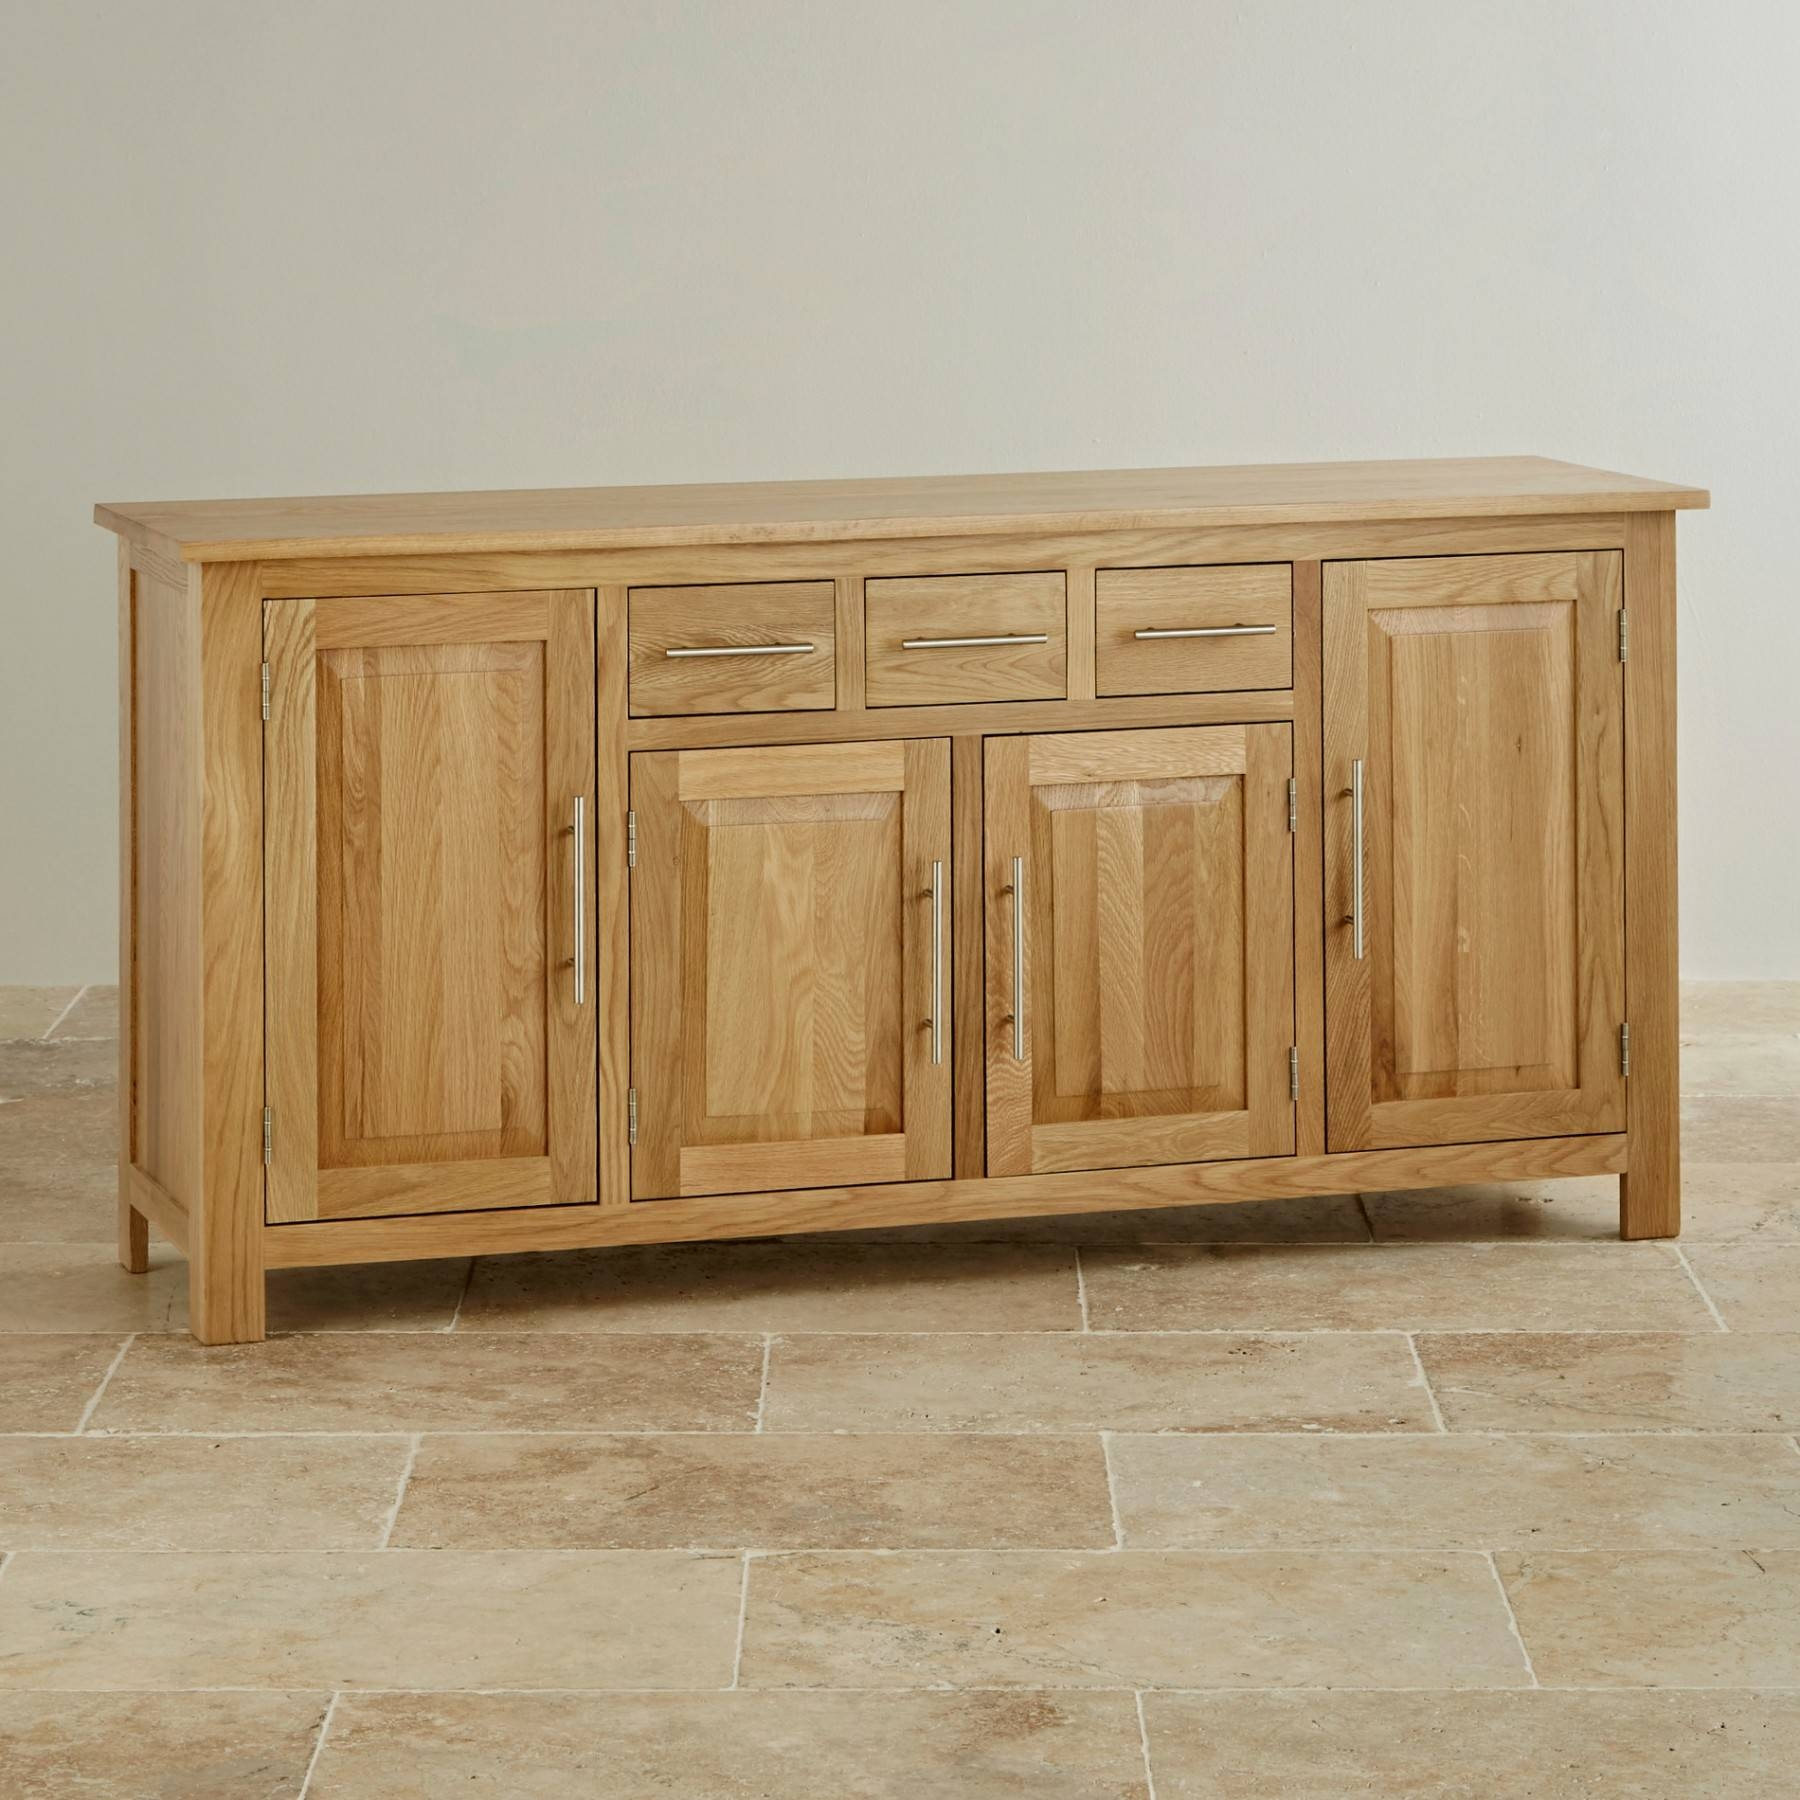 Rivermead Natural Solid Oak Large Sideboard Oak Furniture Land Intended For 2017 Natural Oak Sideboards (#12 of 15)